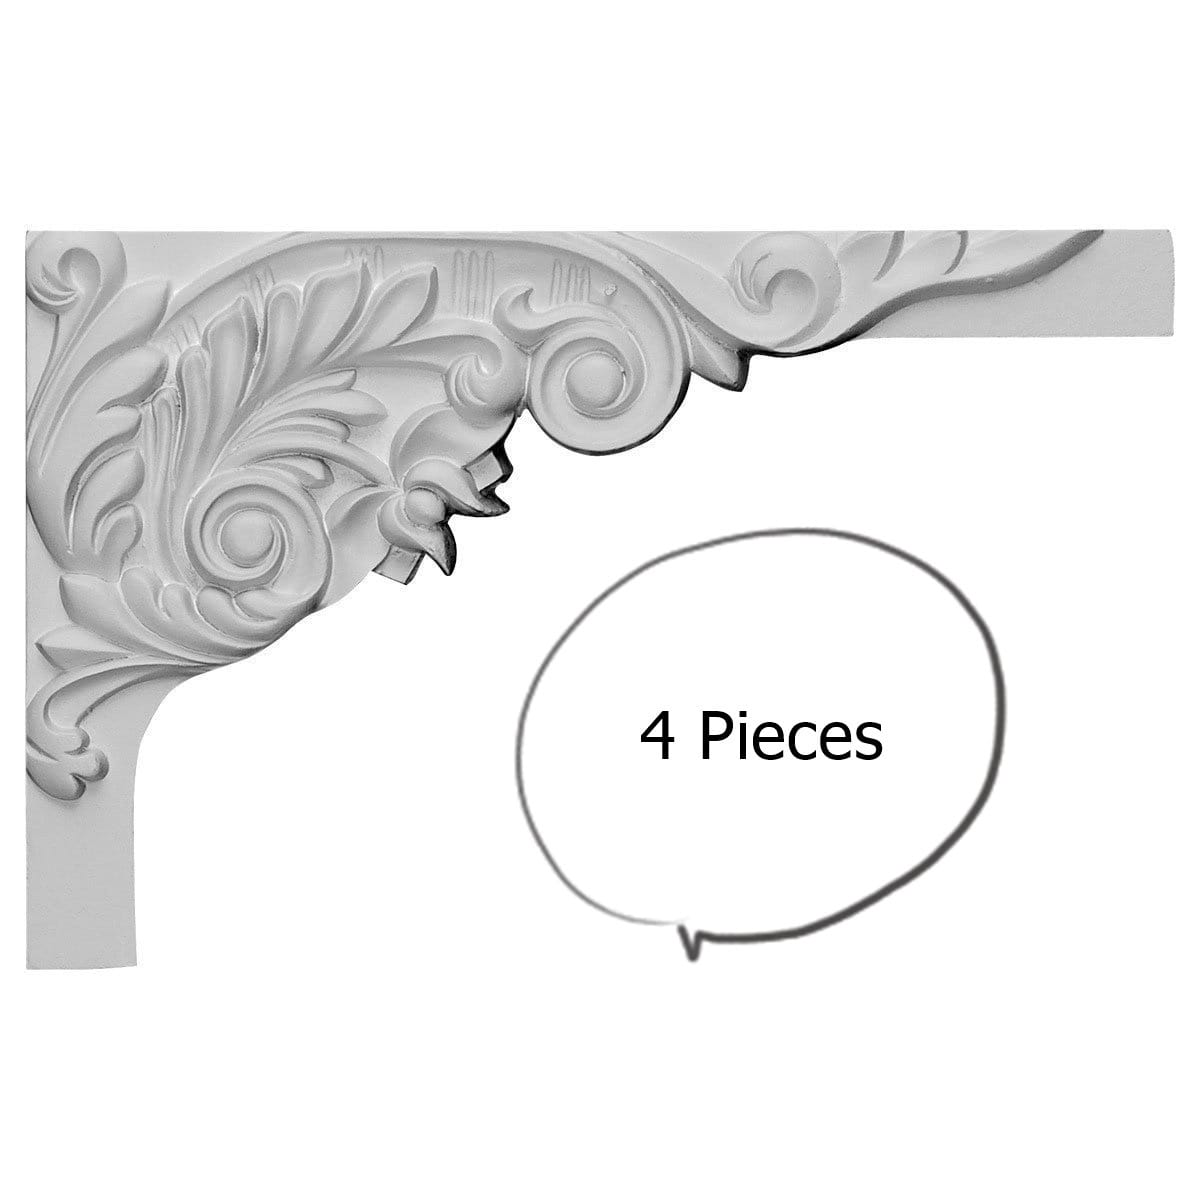 China by WI Acanthus Stair Brackets RIGHT 4 Pieces